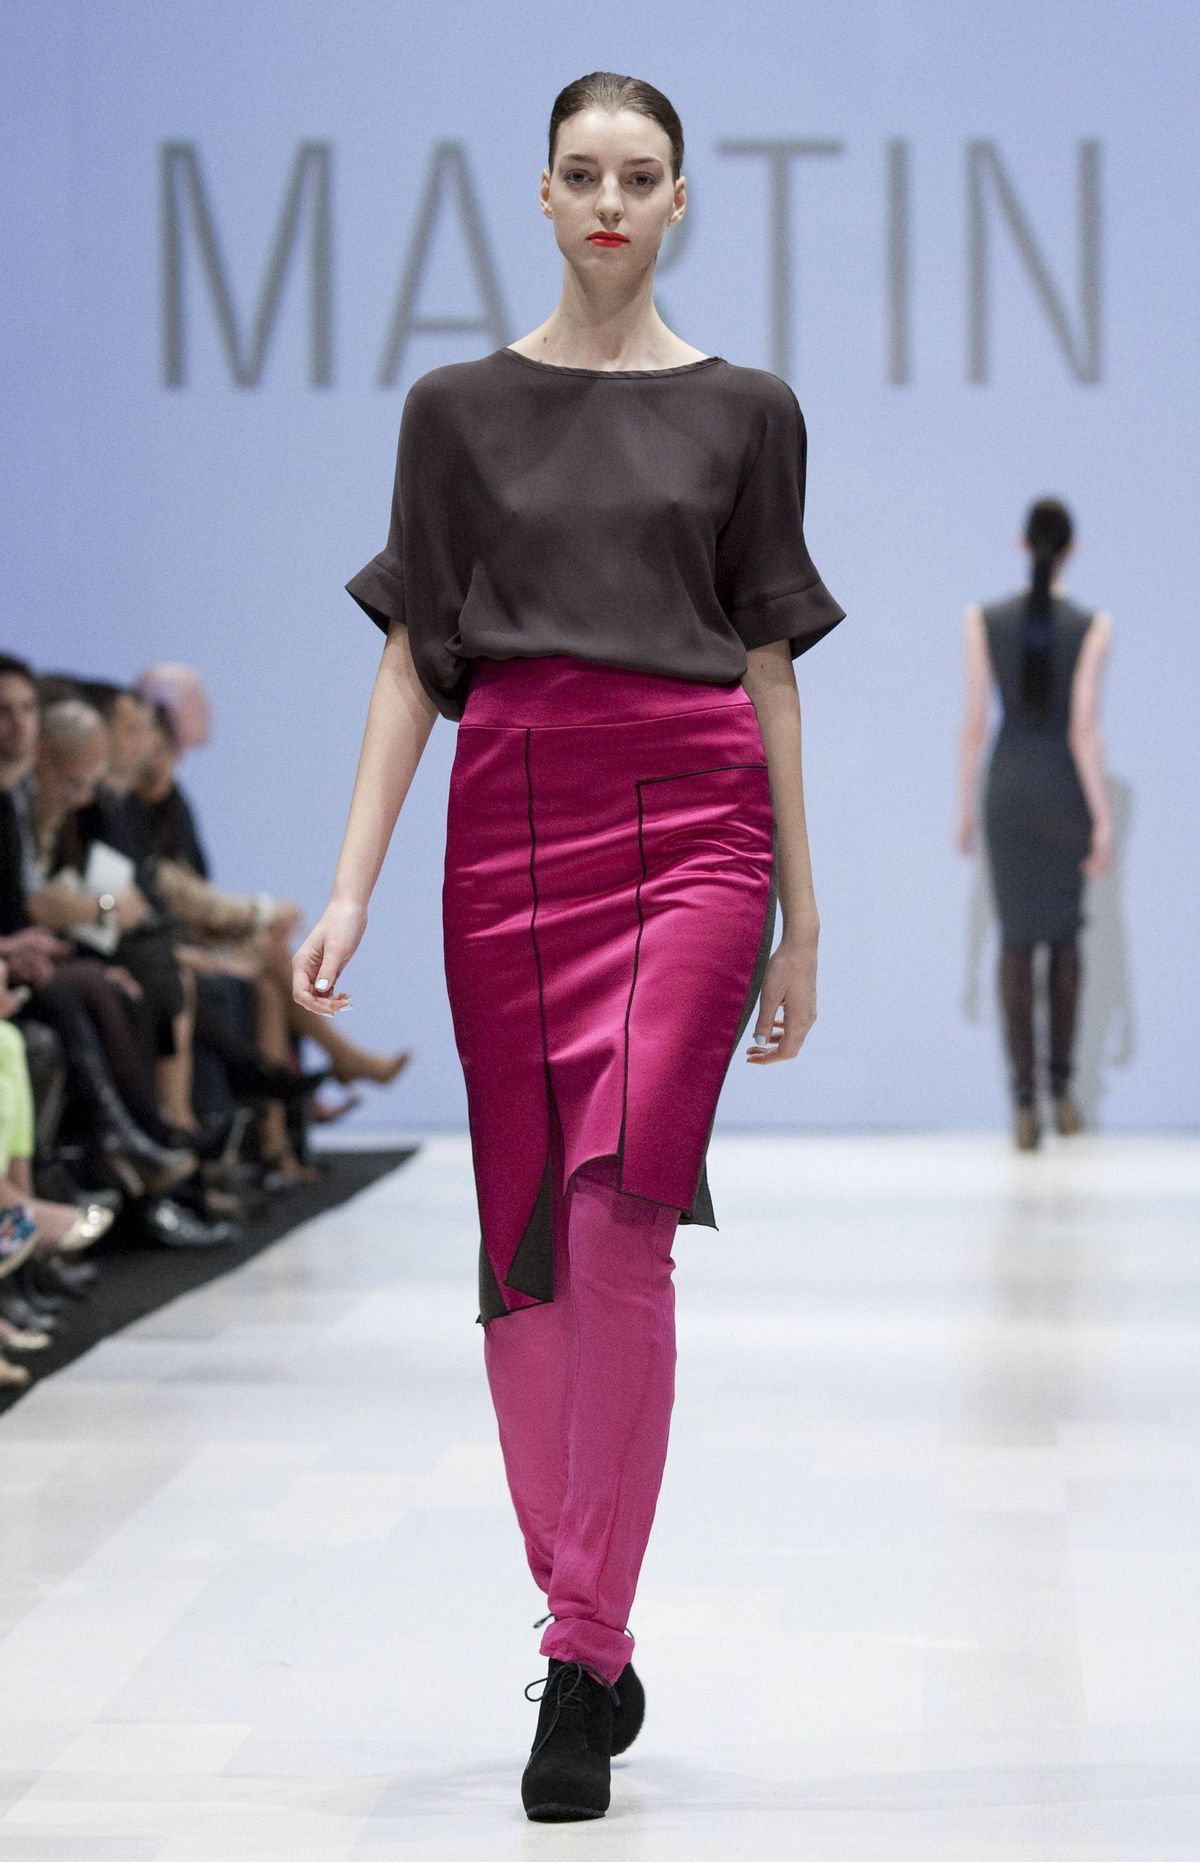 Long strips of silk and satin were used throughout, often to great effect on tunics and shifts that gave shape and sensual movement. But on the boxy tees and scarves, the effect was less than flattering.